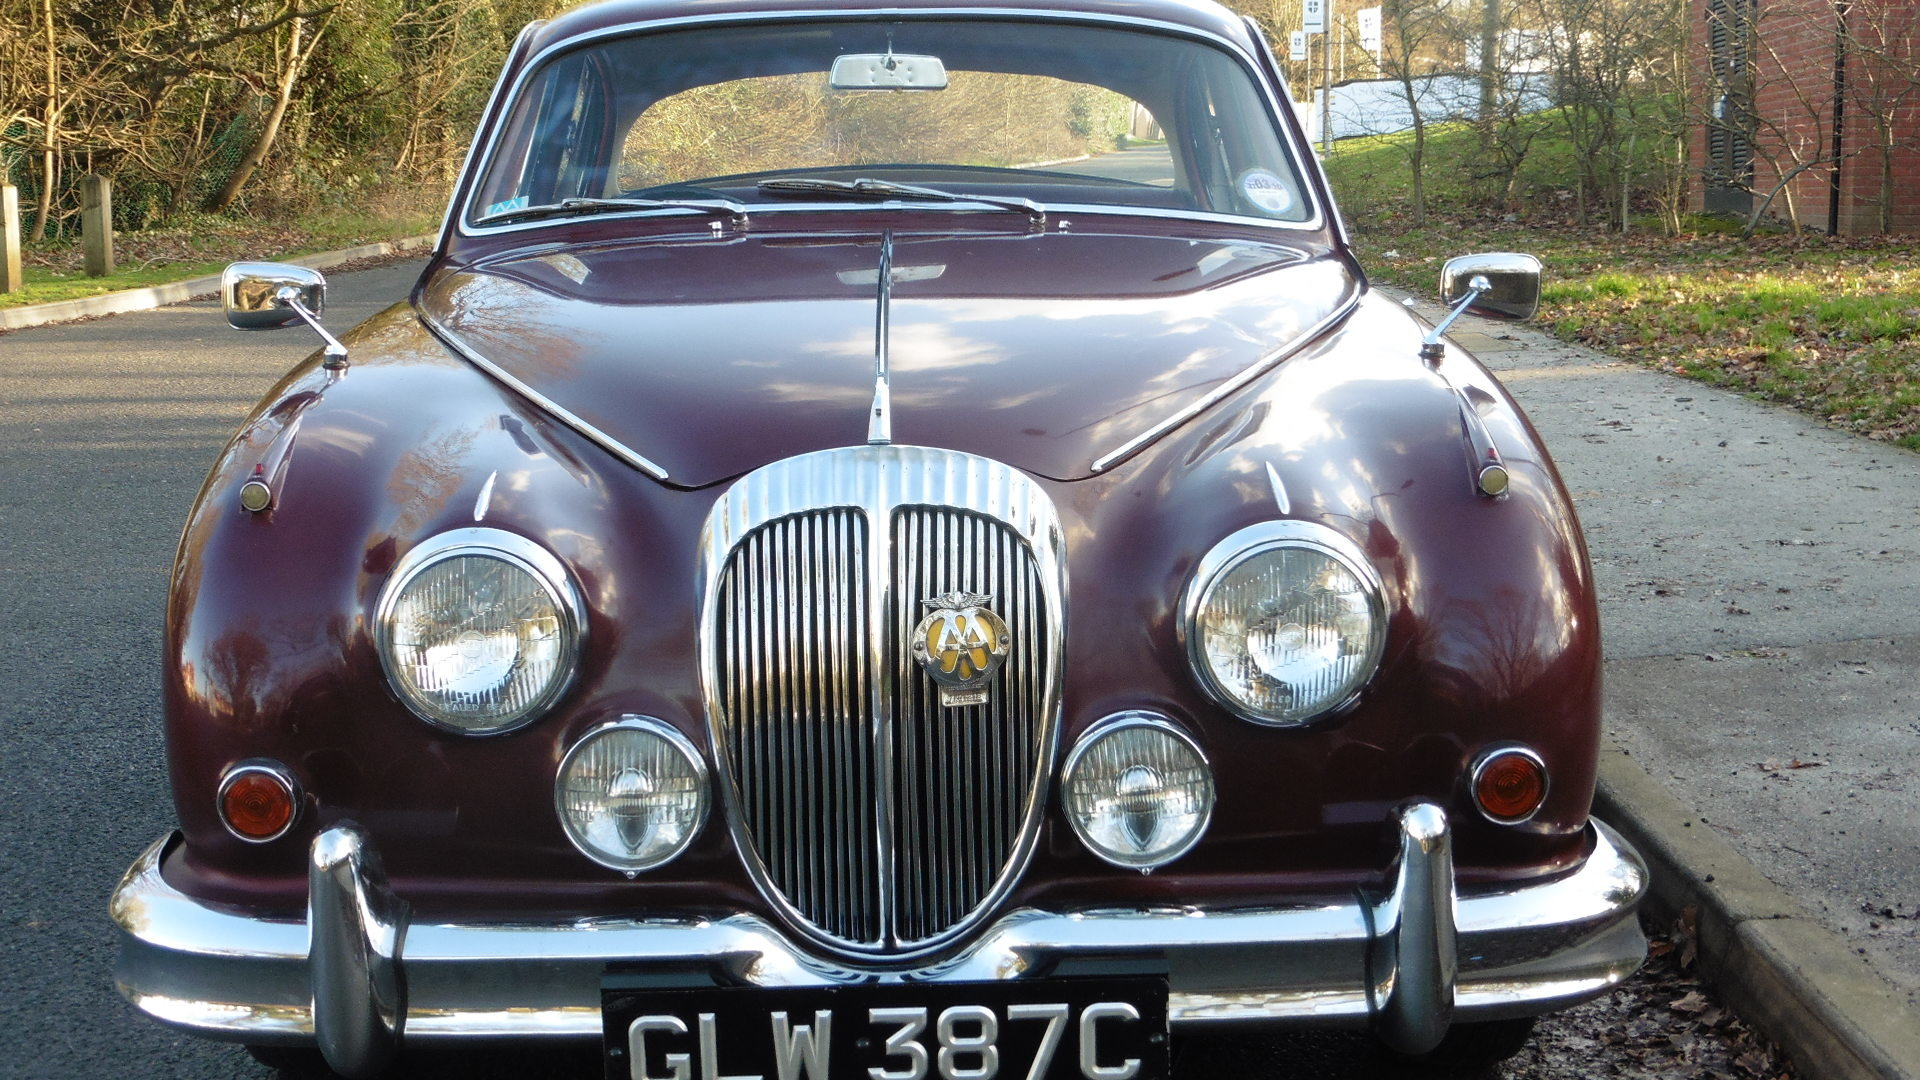 1965 Daimler V8 250 Just 2 Owners & 45,000 Miles Time Warp Cond. SOLD (picture 1 of 6)